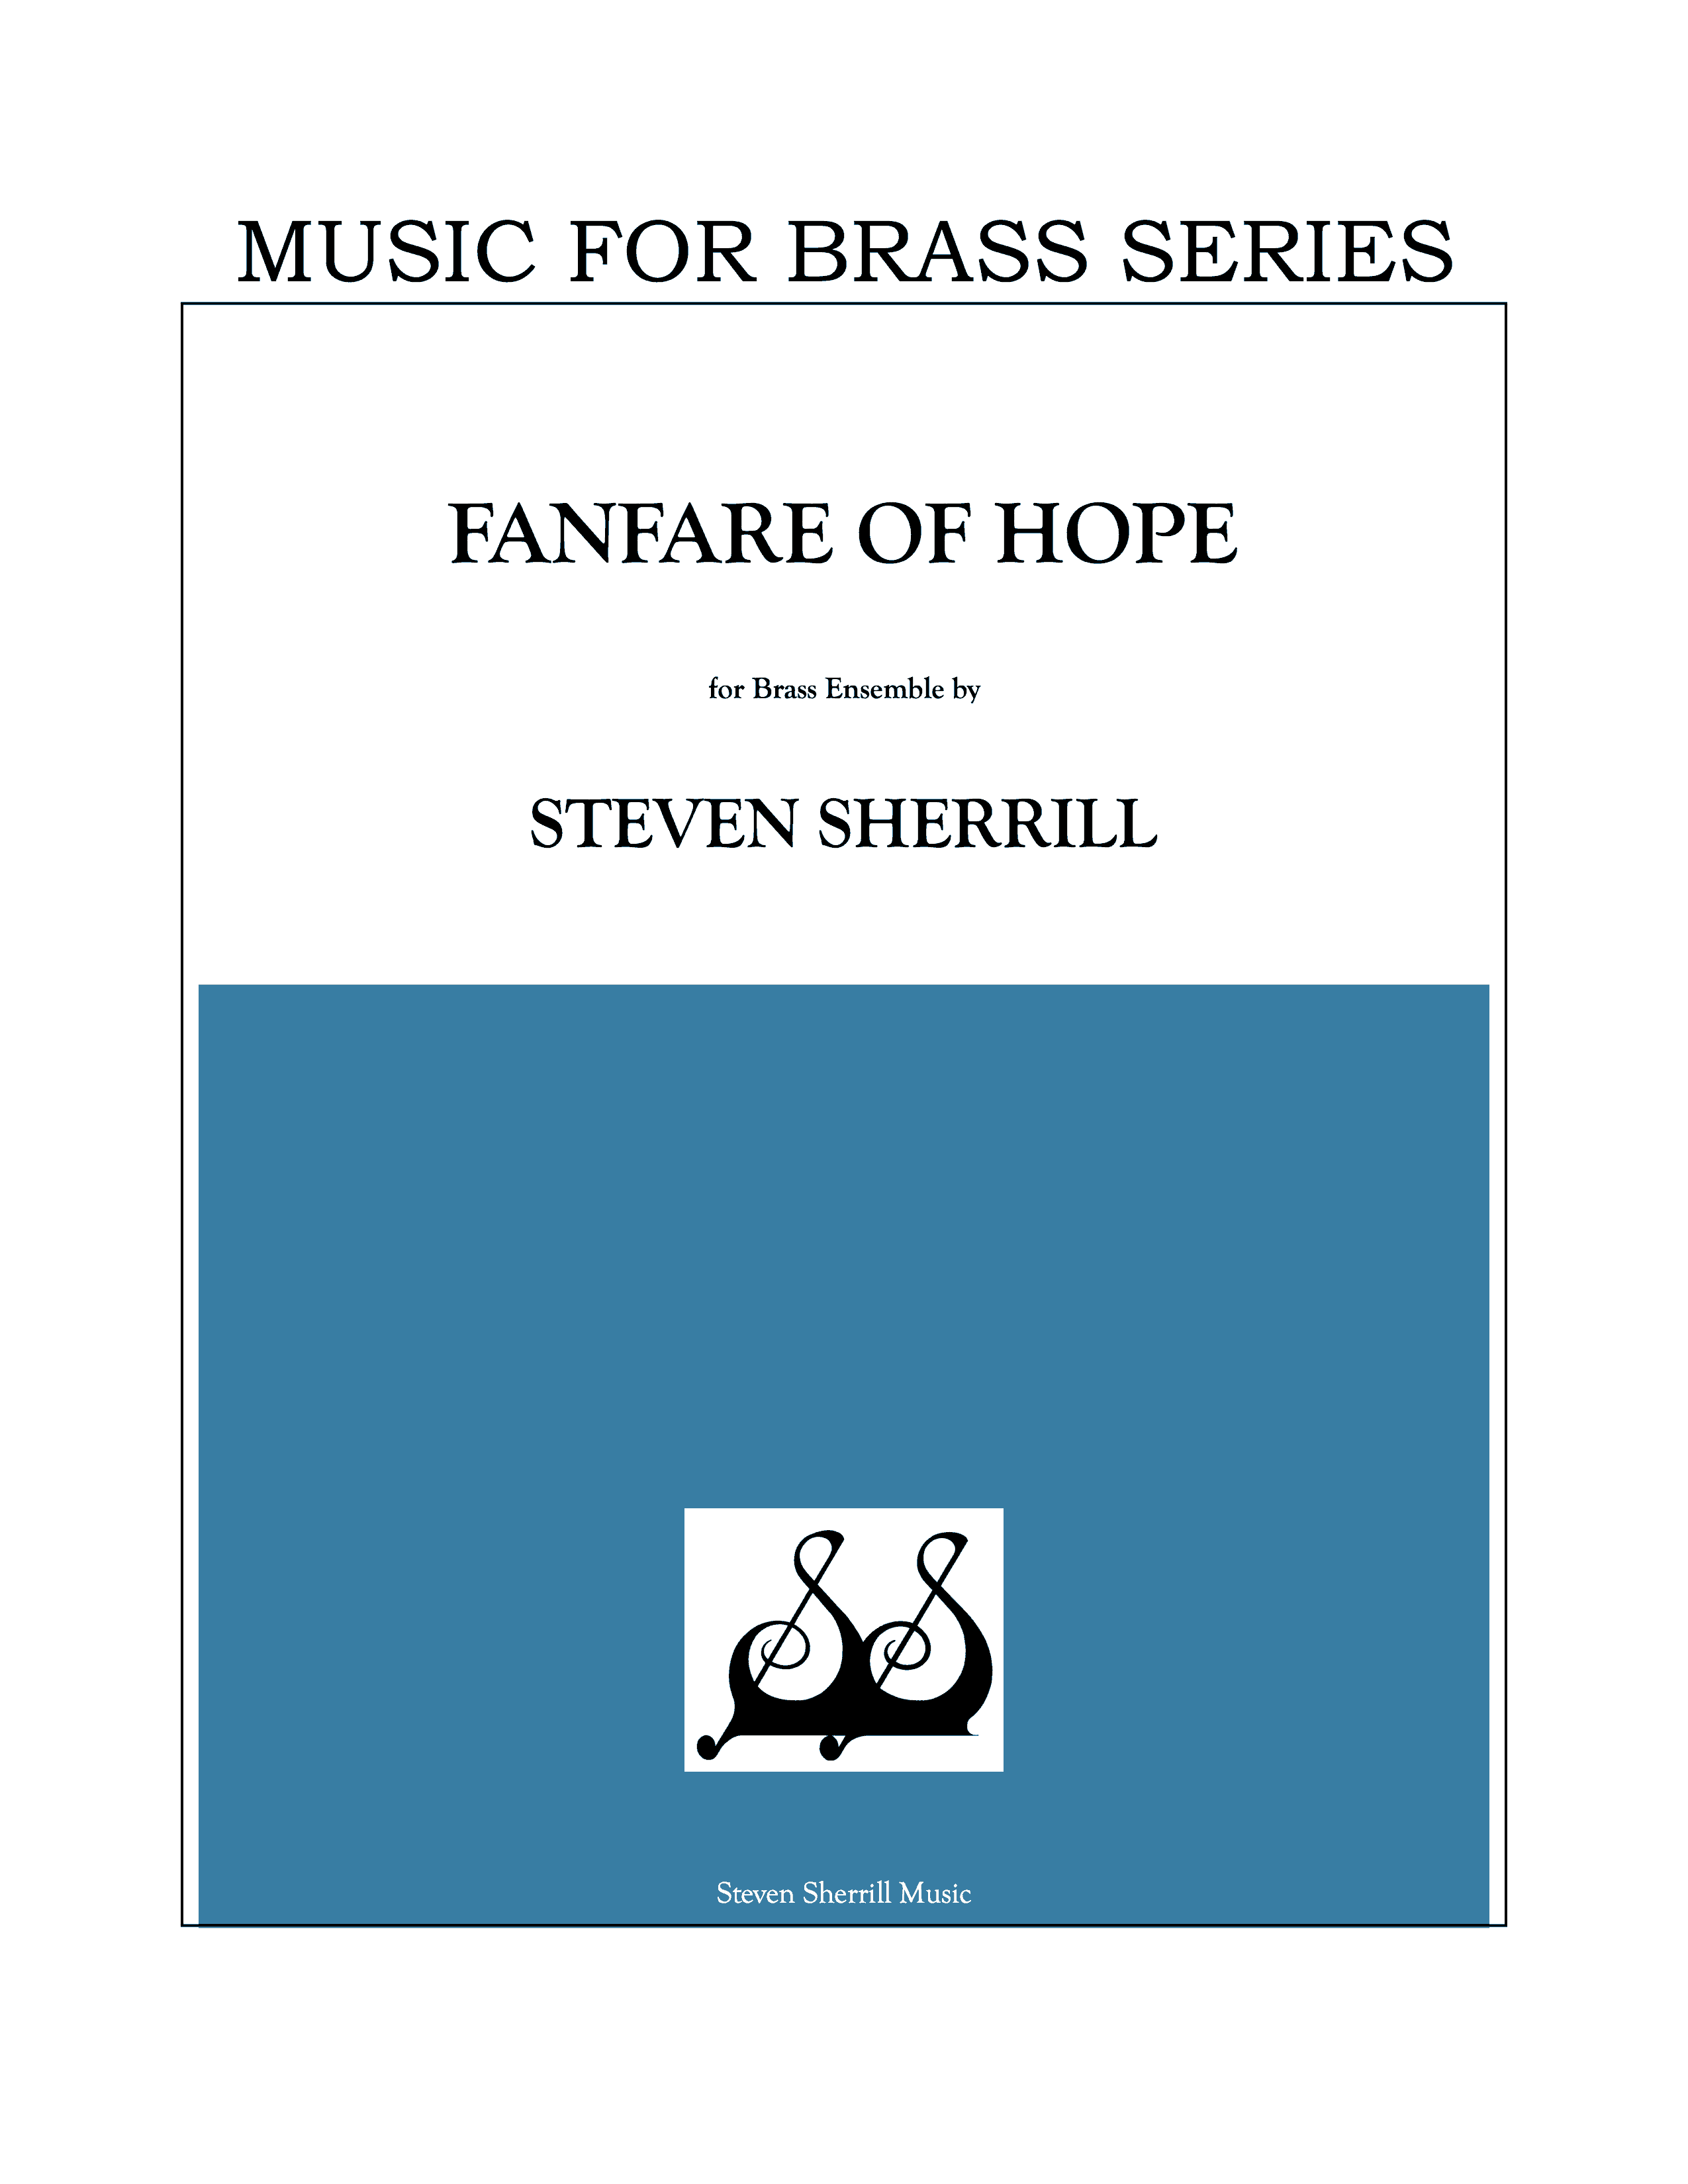 Fanfare of Hope cover page